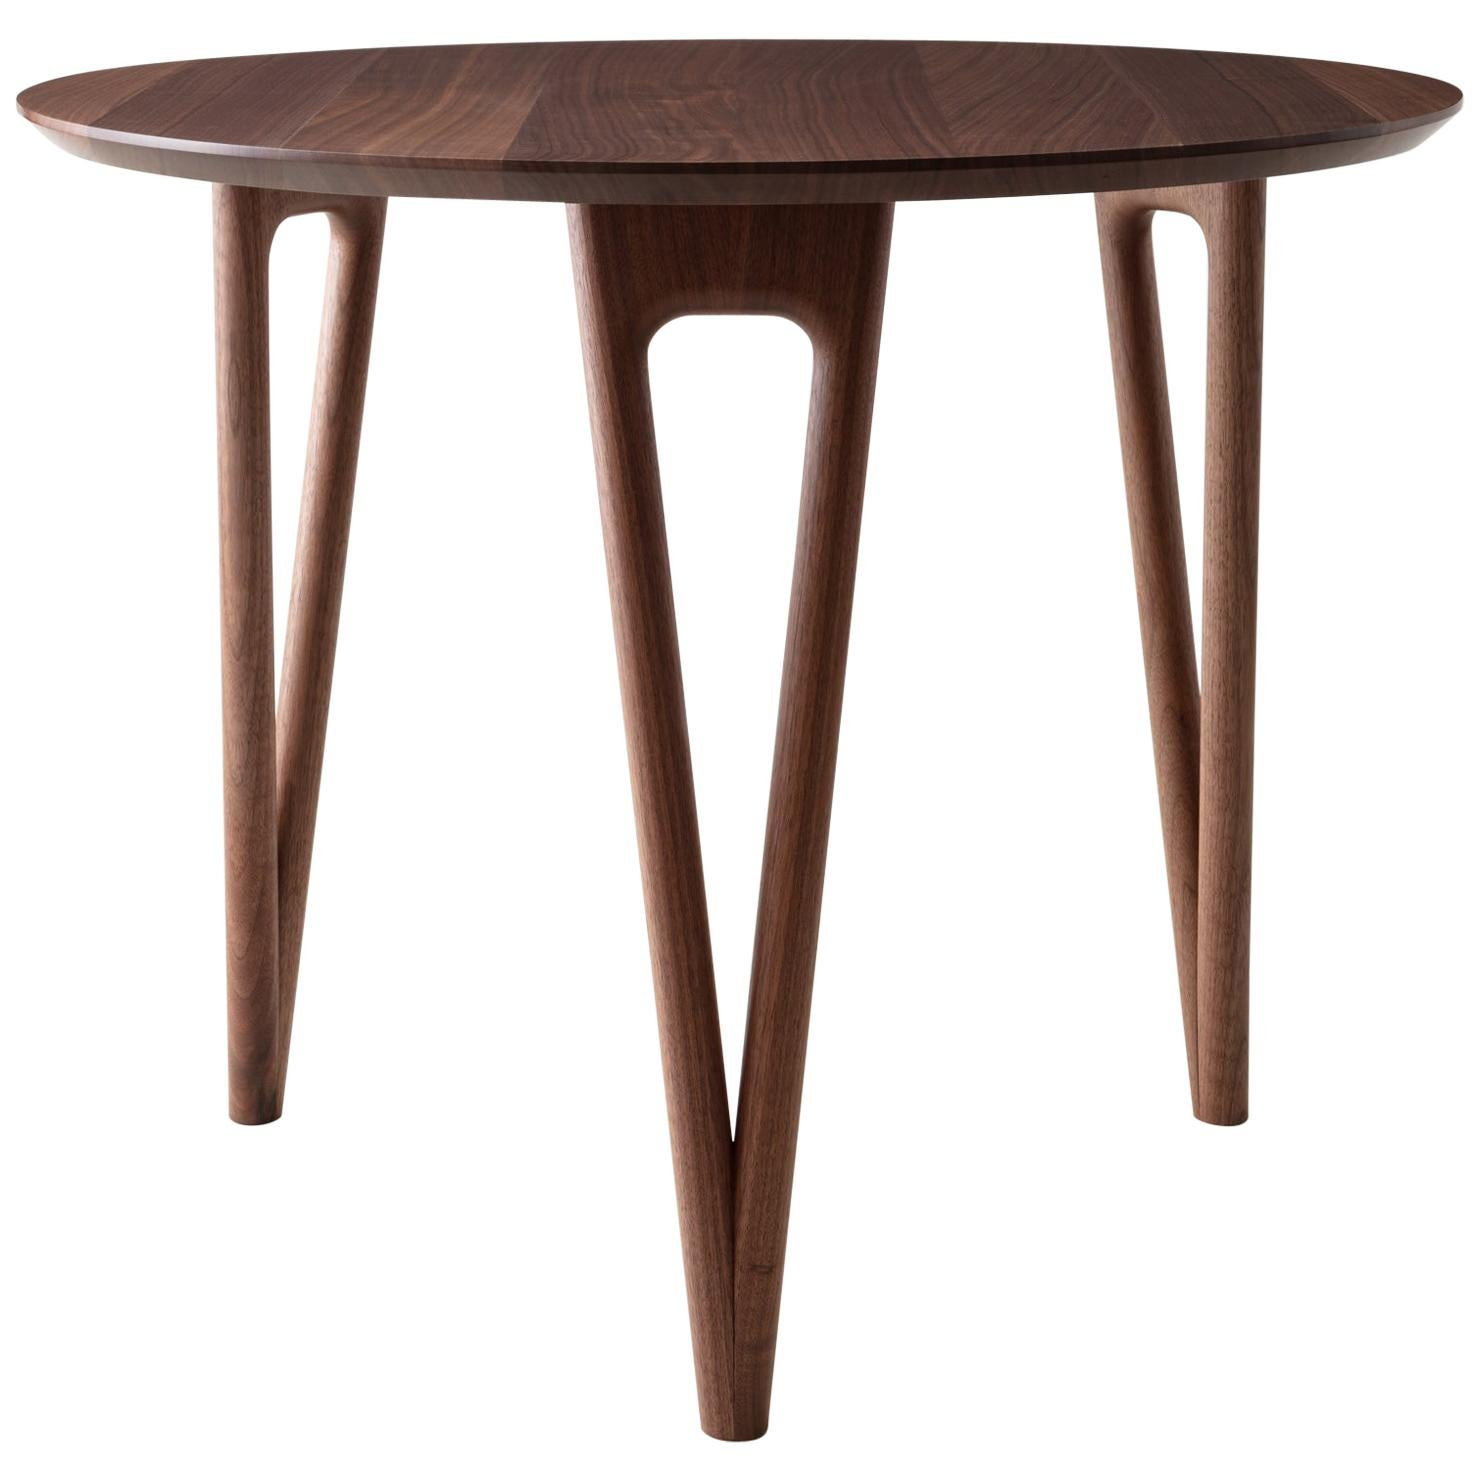 Hair Pin Dining Table 36 Round, Walnut Hardwood, Center Table, Occasional Table